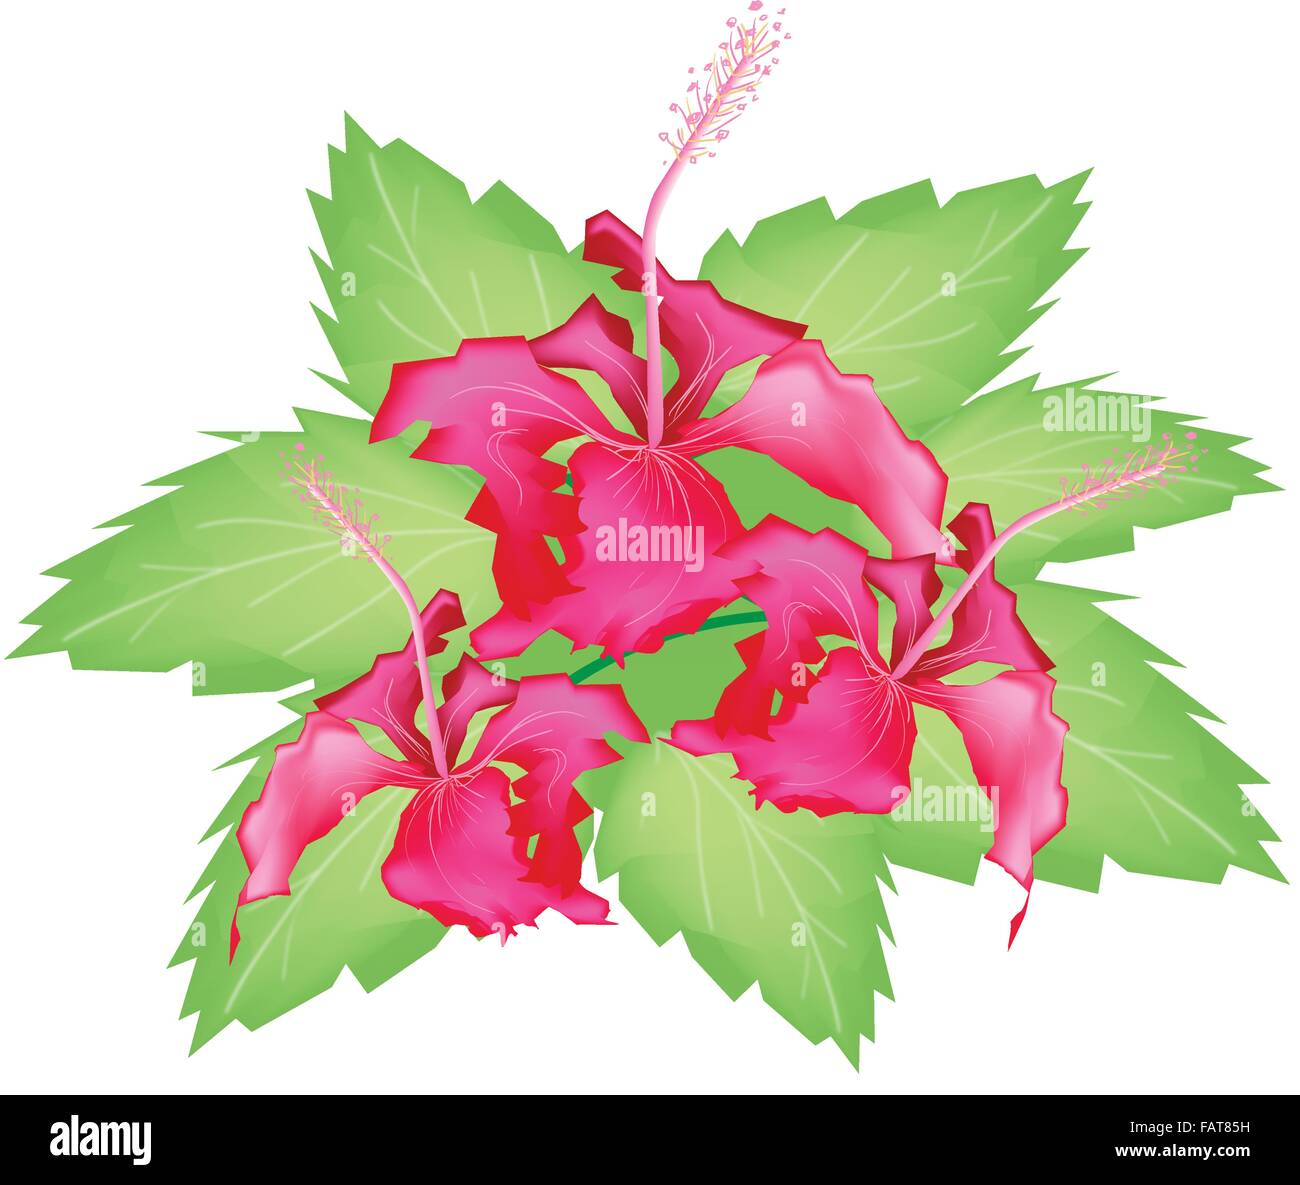 Beautiful flower an illustration group of fresh red hibiscus beautiful flower an illustration group of fresh red hibiscus flowers or bunga raya on green leaves isolated on a white backgrou izmirmasajfo